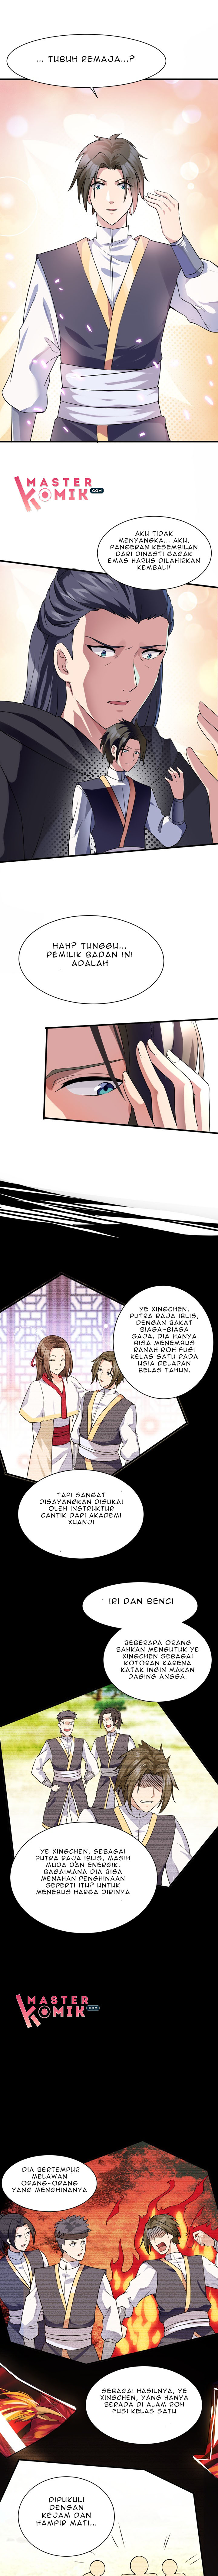 Spoiler Manhua Chaos Golden Crow 2